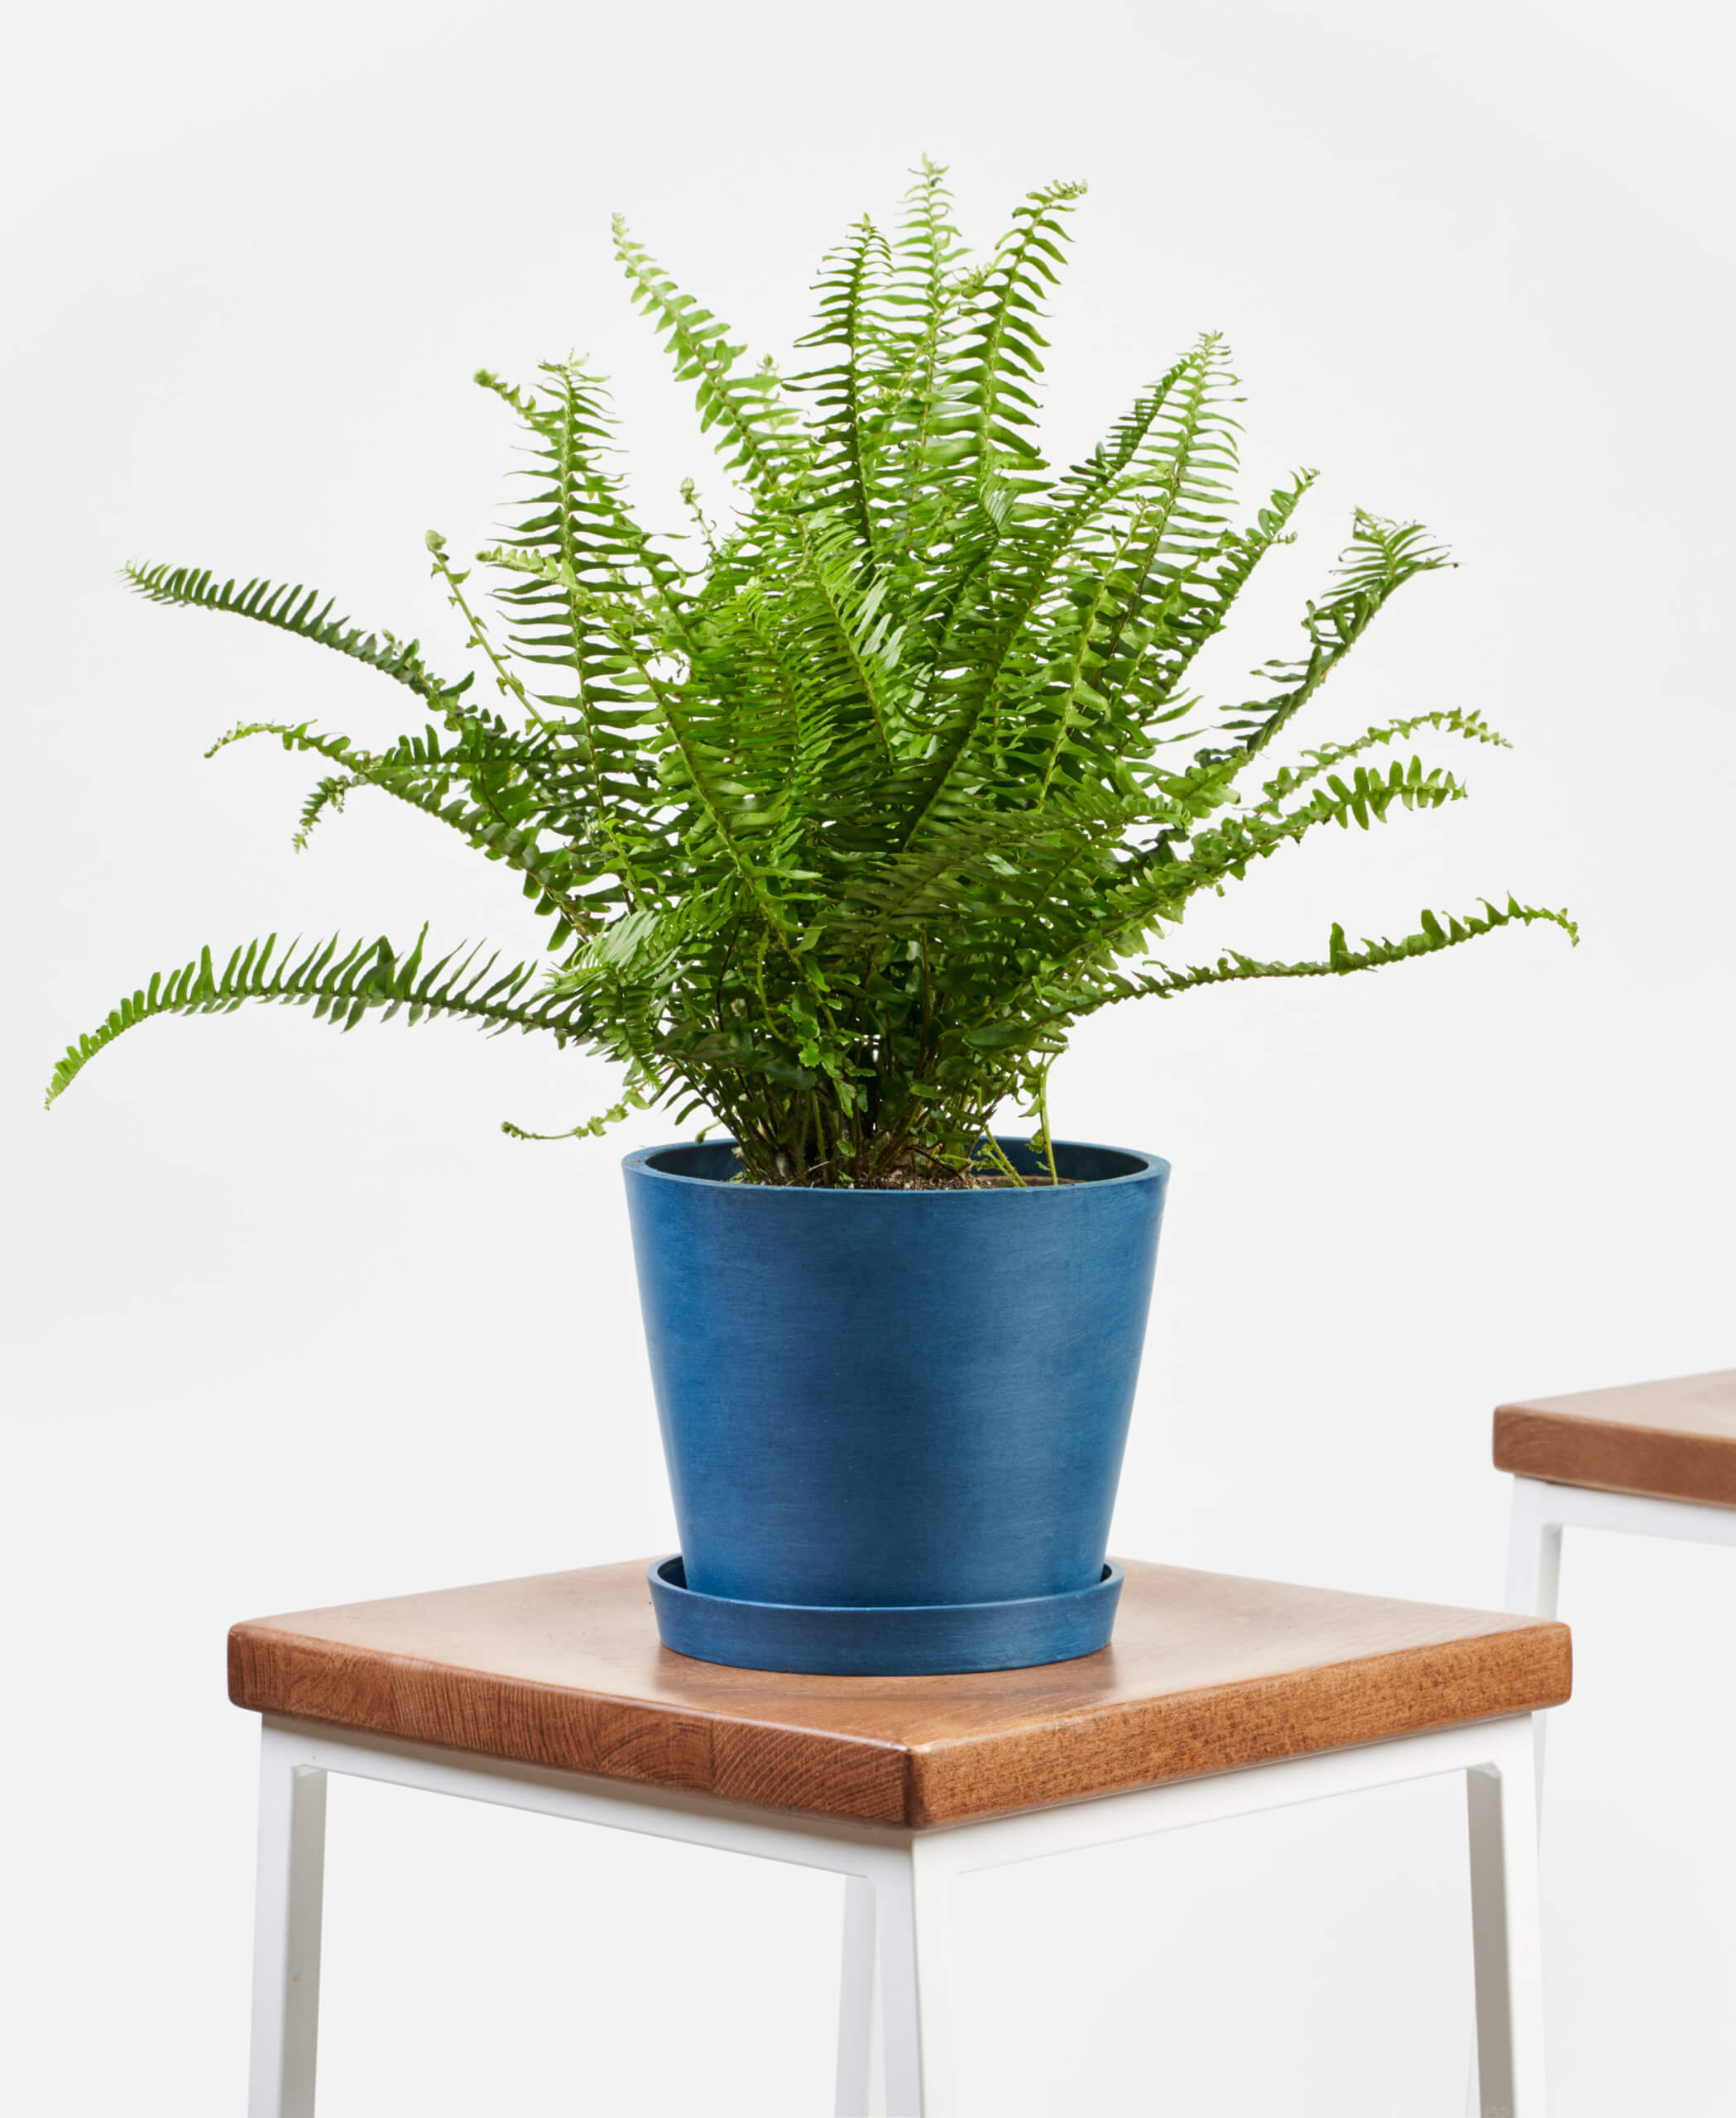 bloomscape_product_kimberly-queen-fern_indigo-1-scaled